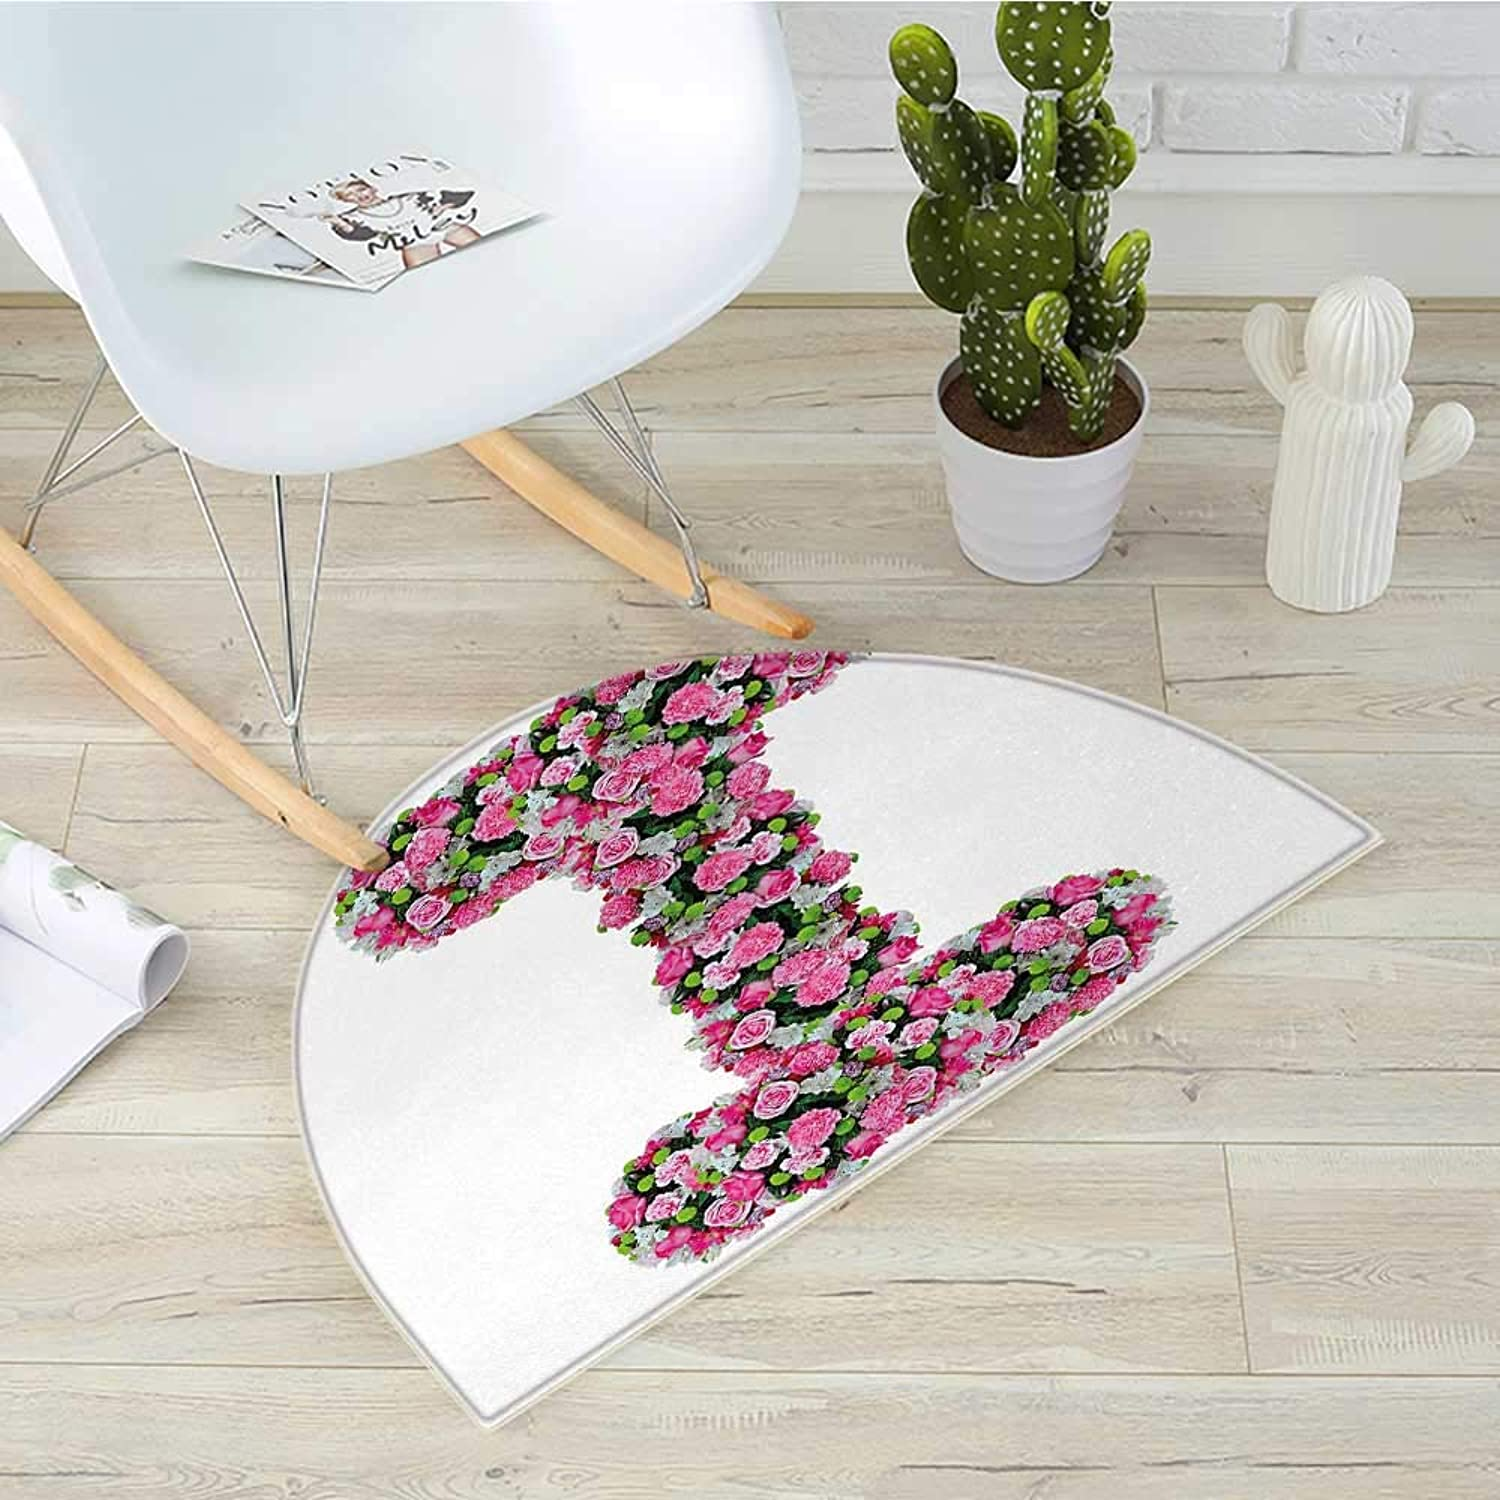 Letter I Half Round Door mats Initial Letter I with colorful Blooming Bouquet Daisies Realistic Looking Flowers Bathroom Mat H 51.1  xD 76.7  Pink Green